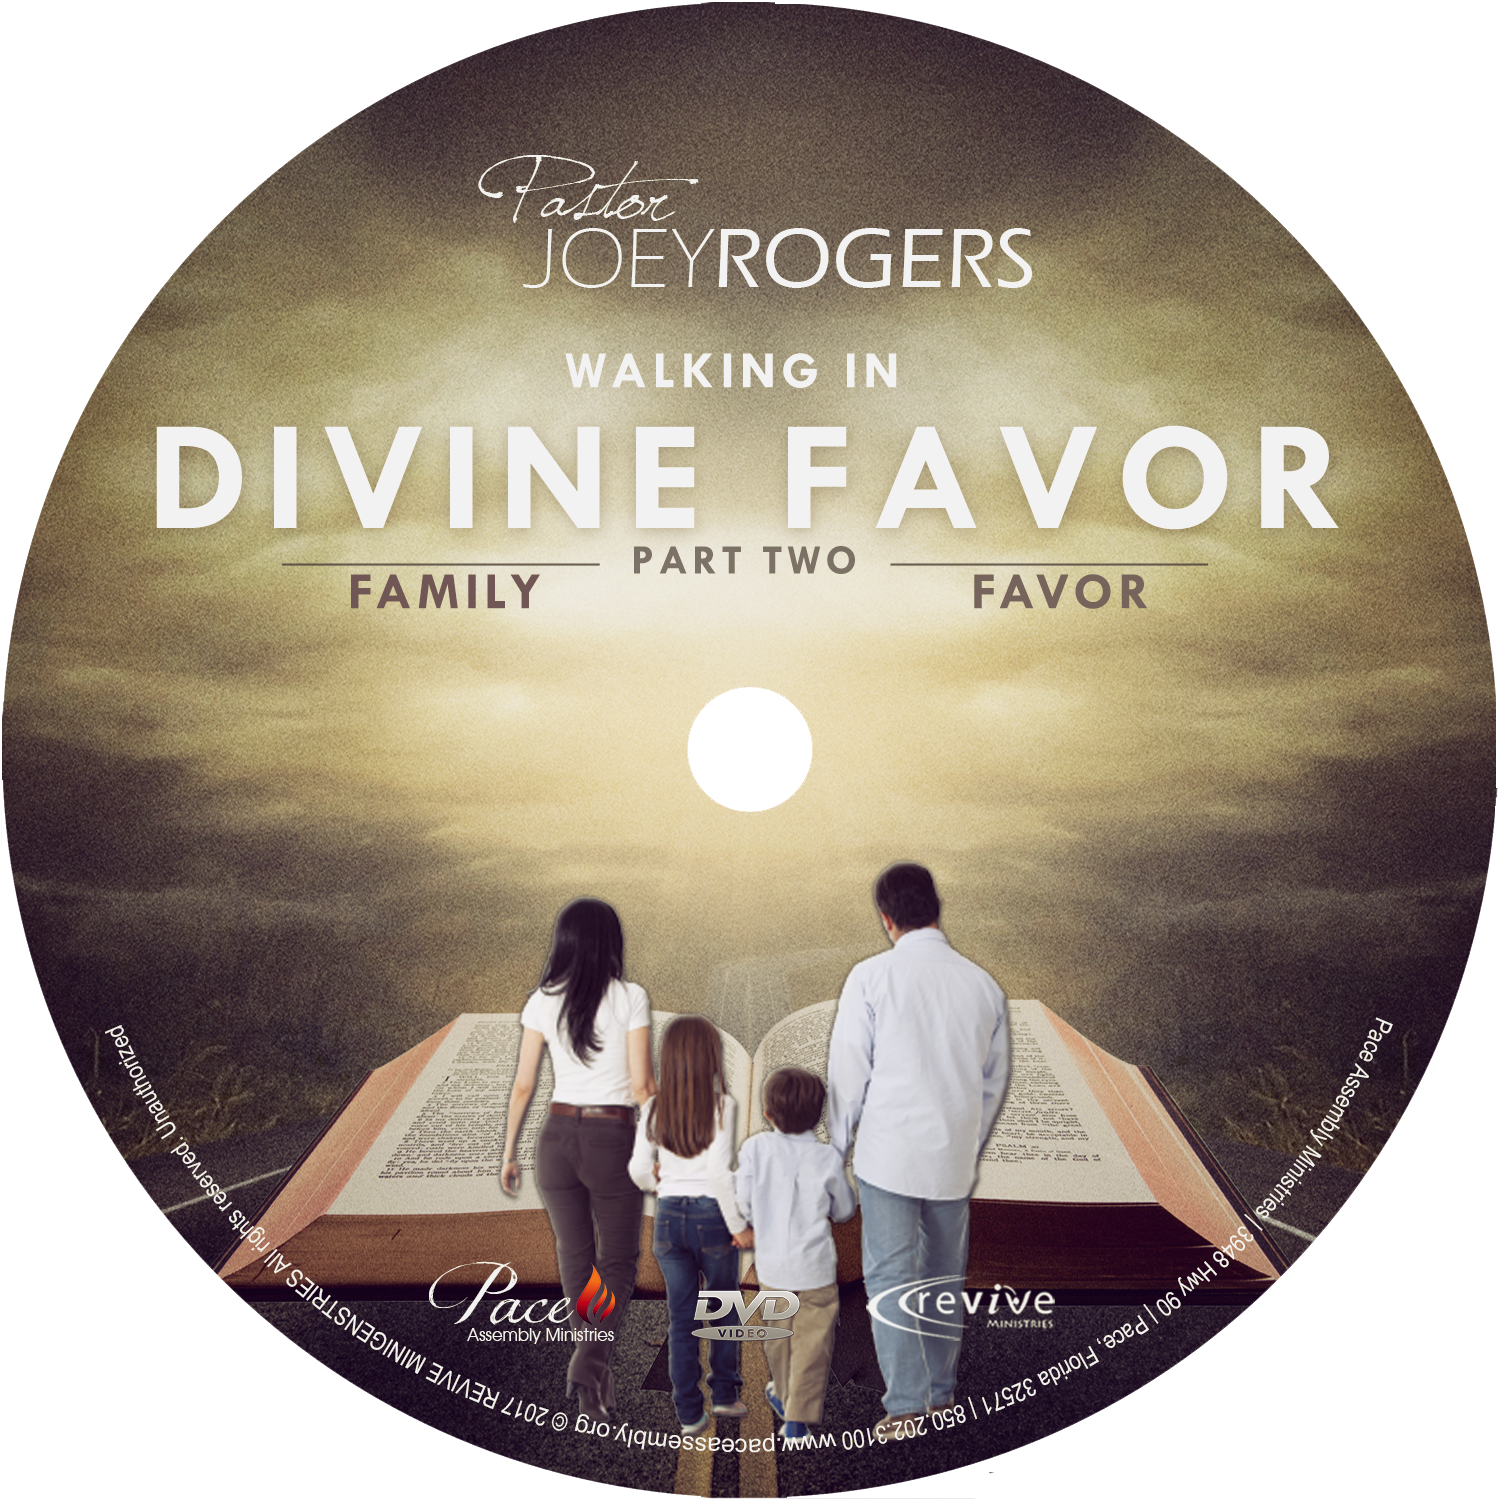 Walking in Divine Favor Pt. 2 - Family Favor